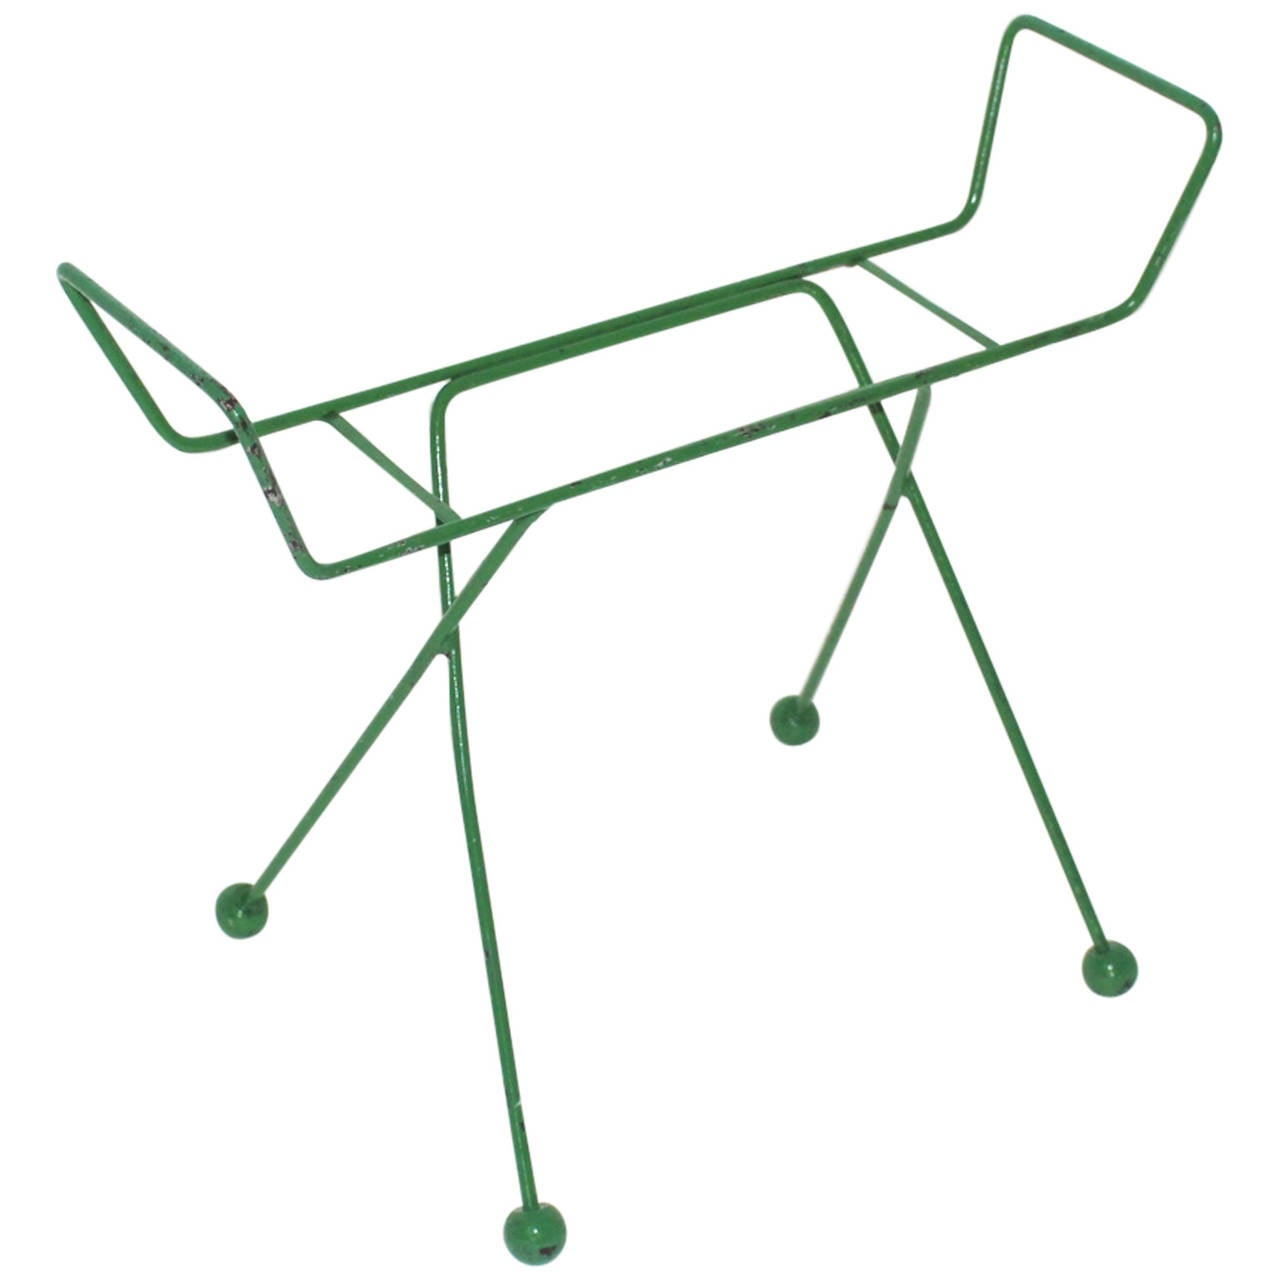 Mid Century Modern Green Metal Vintage Luggage Rack Attr to Jean Royère 1950s For Sale